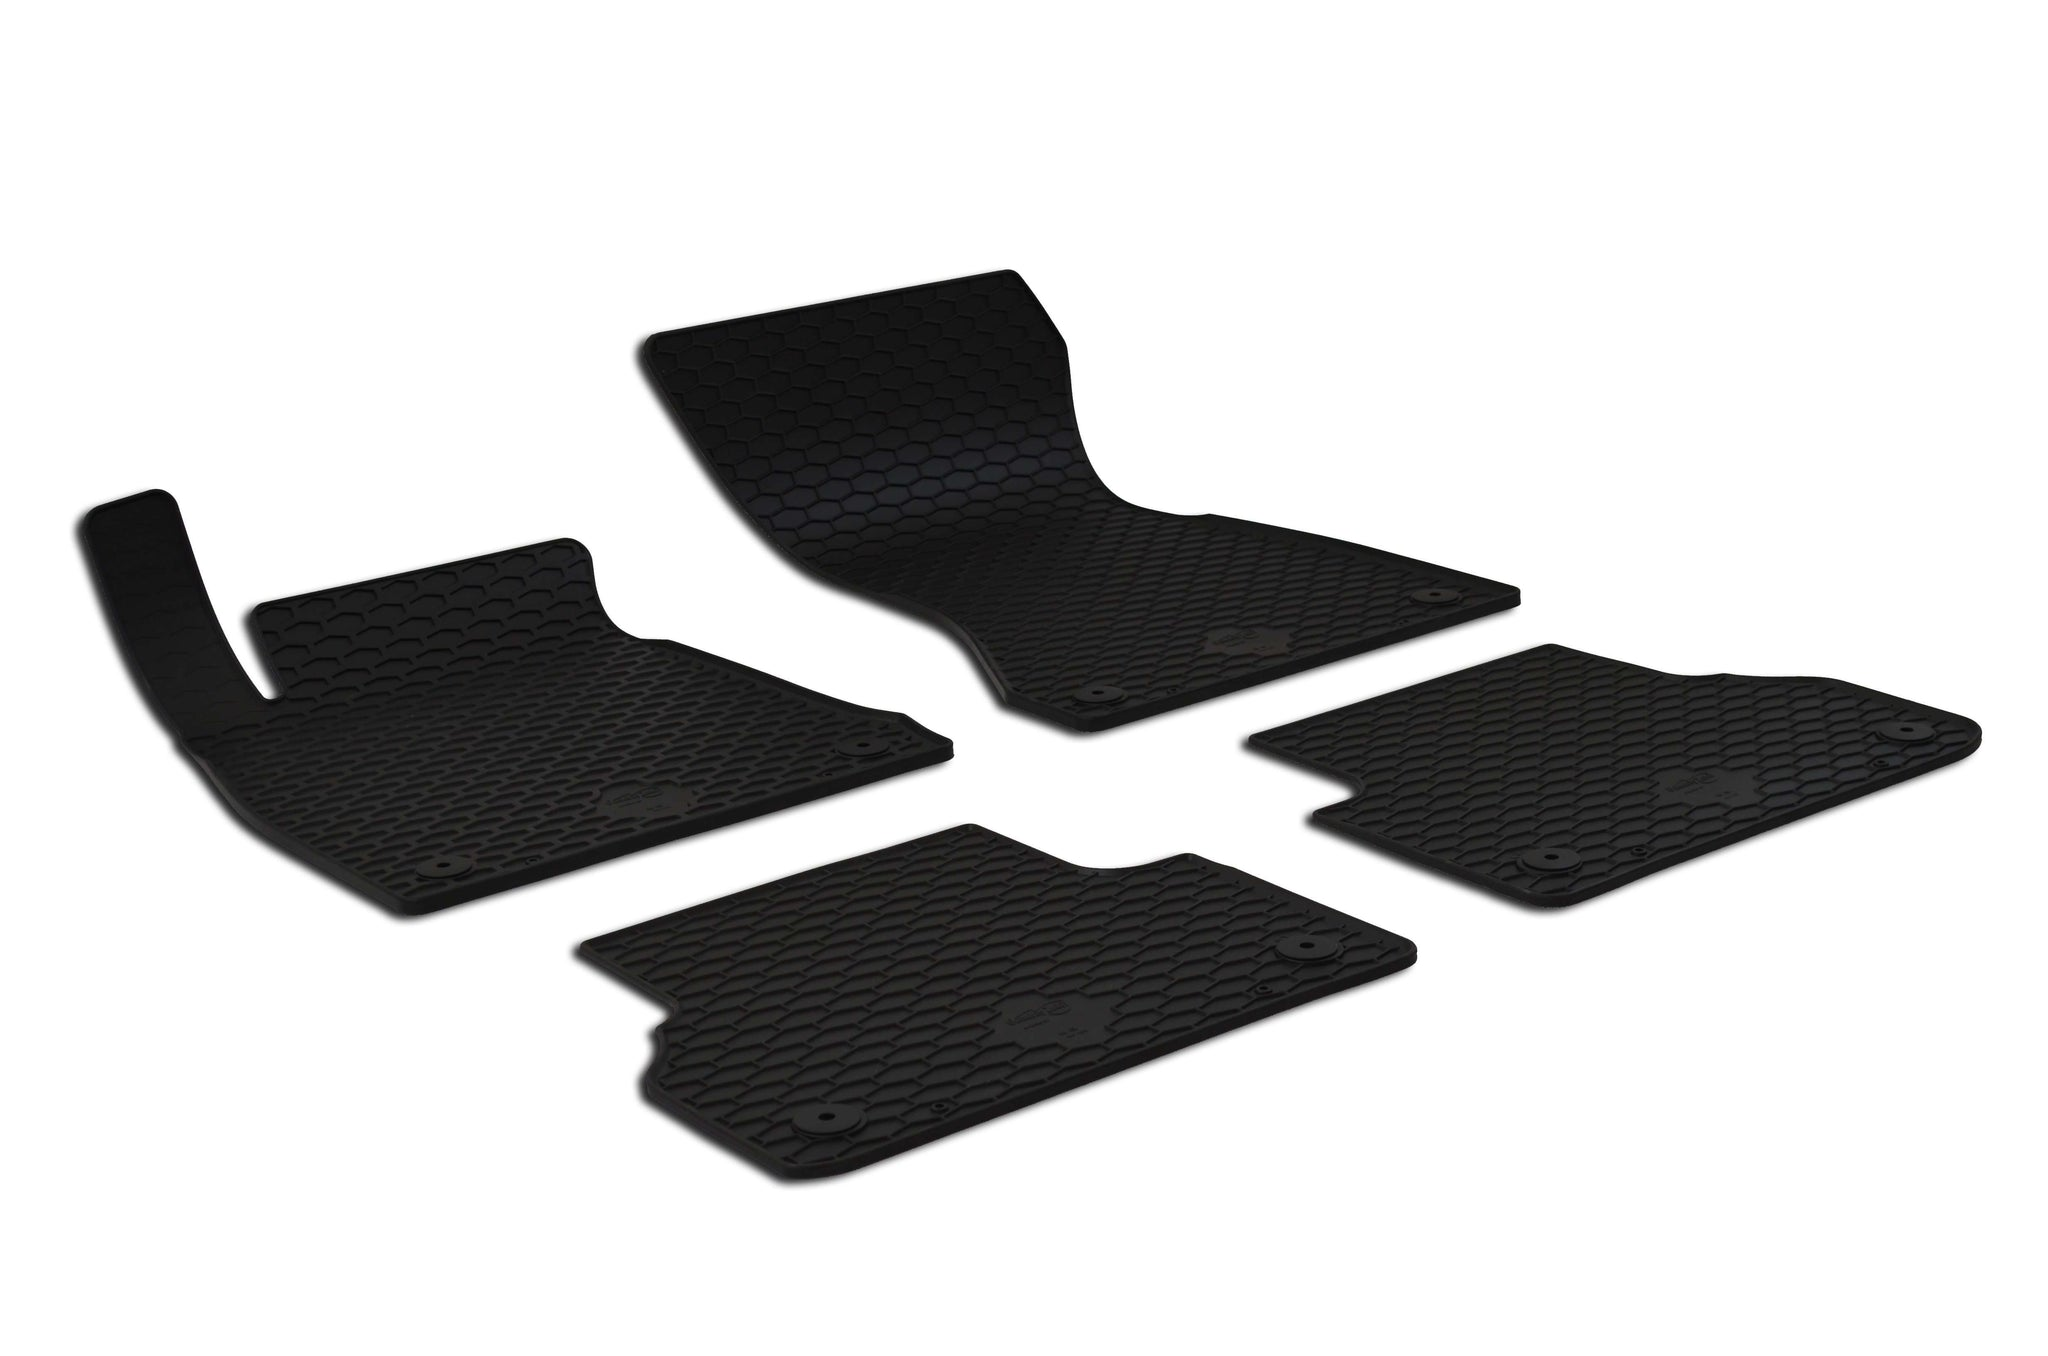 Audi A4 2017 B9 Set of 4 Black Rubber OE Fit All Weather Car Floor Mats